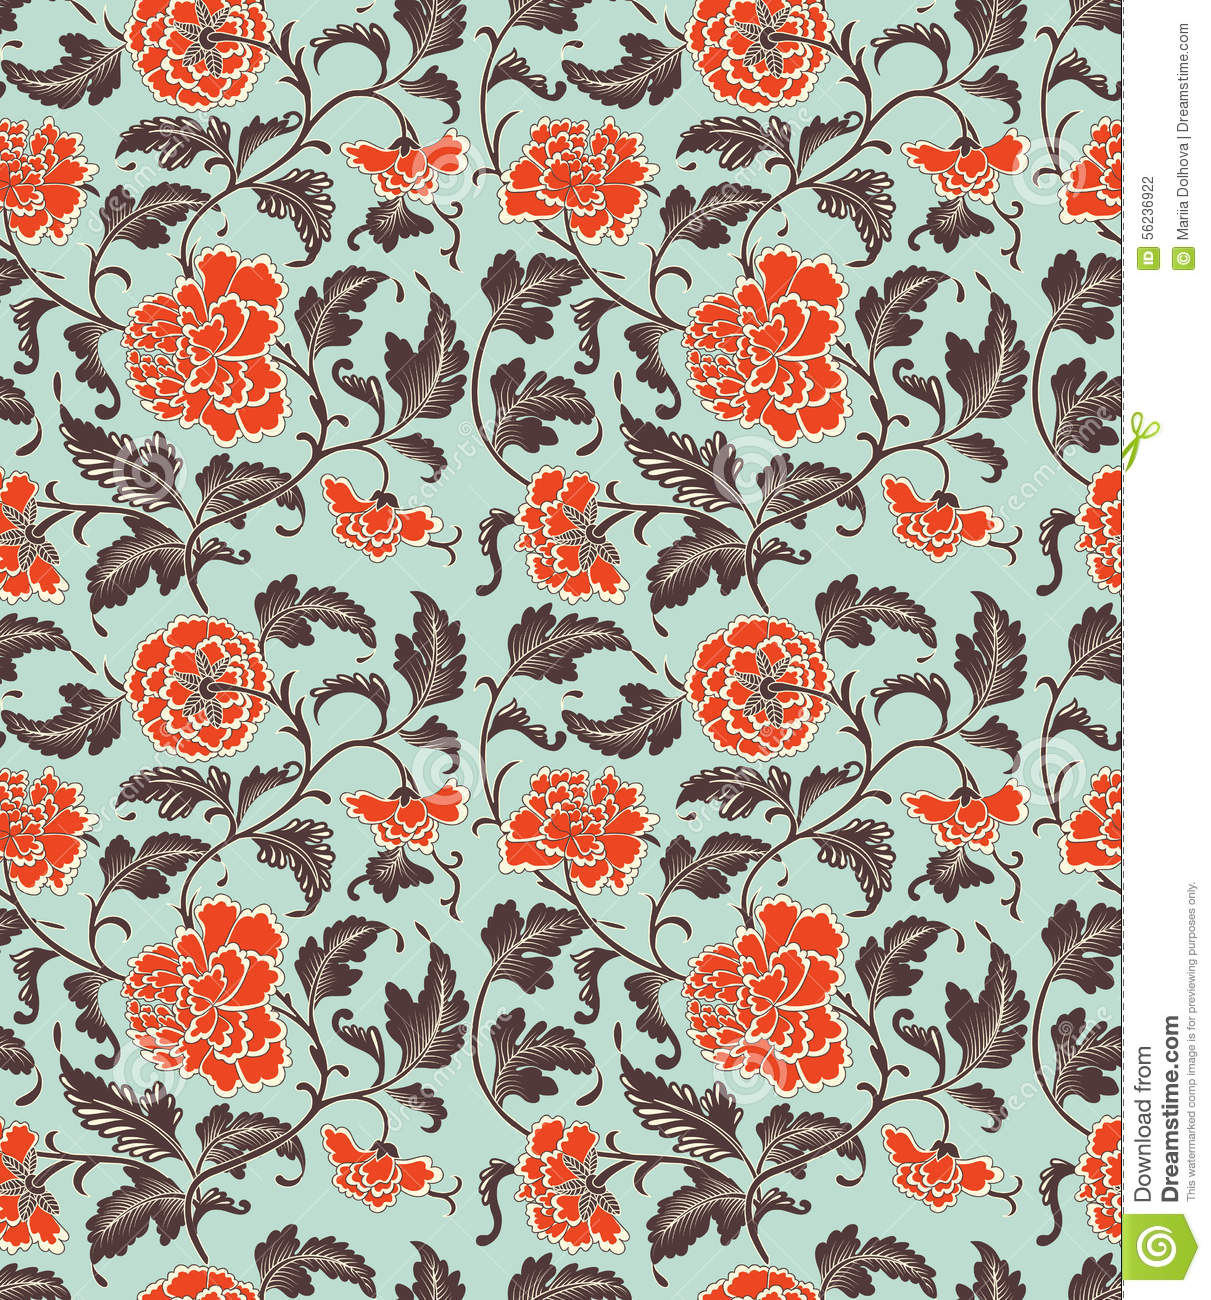 Chinese background with flowers.